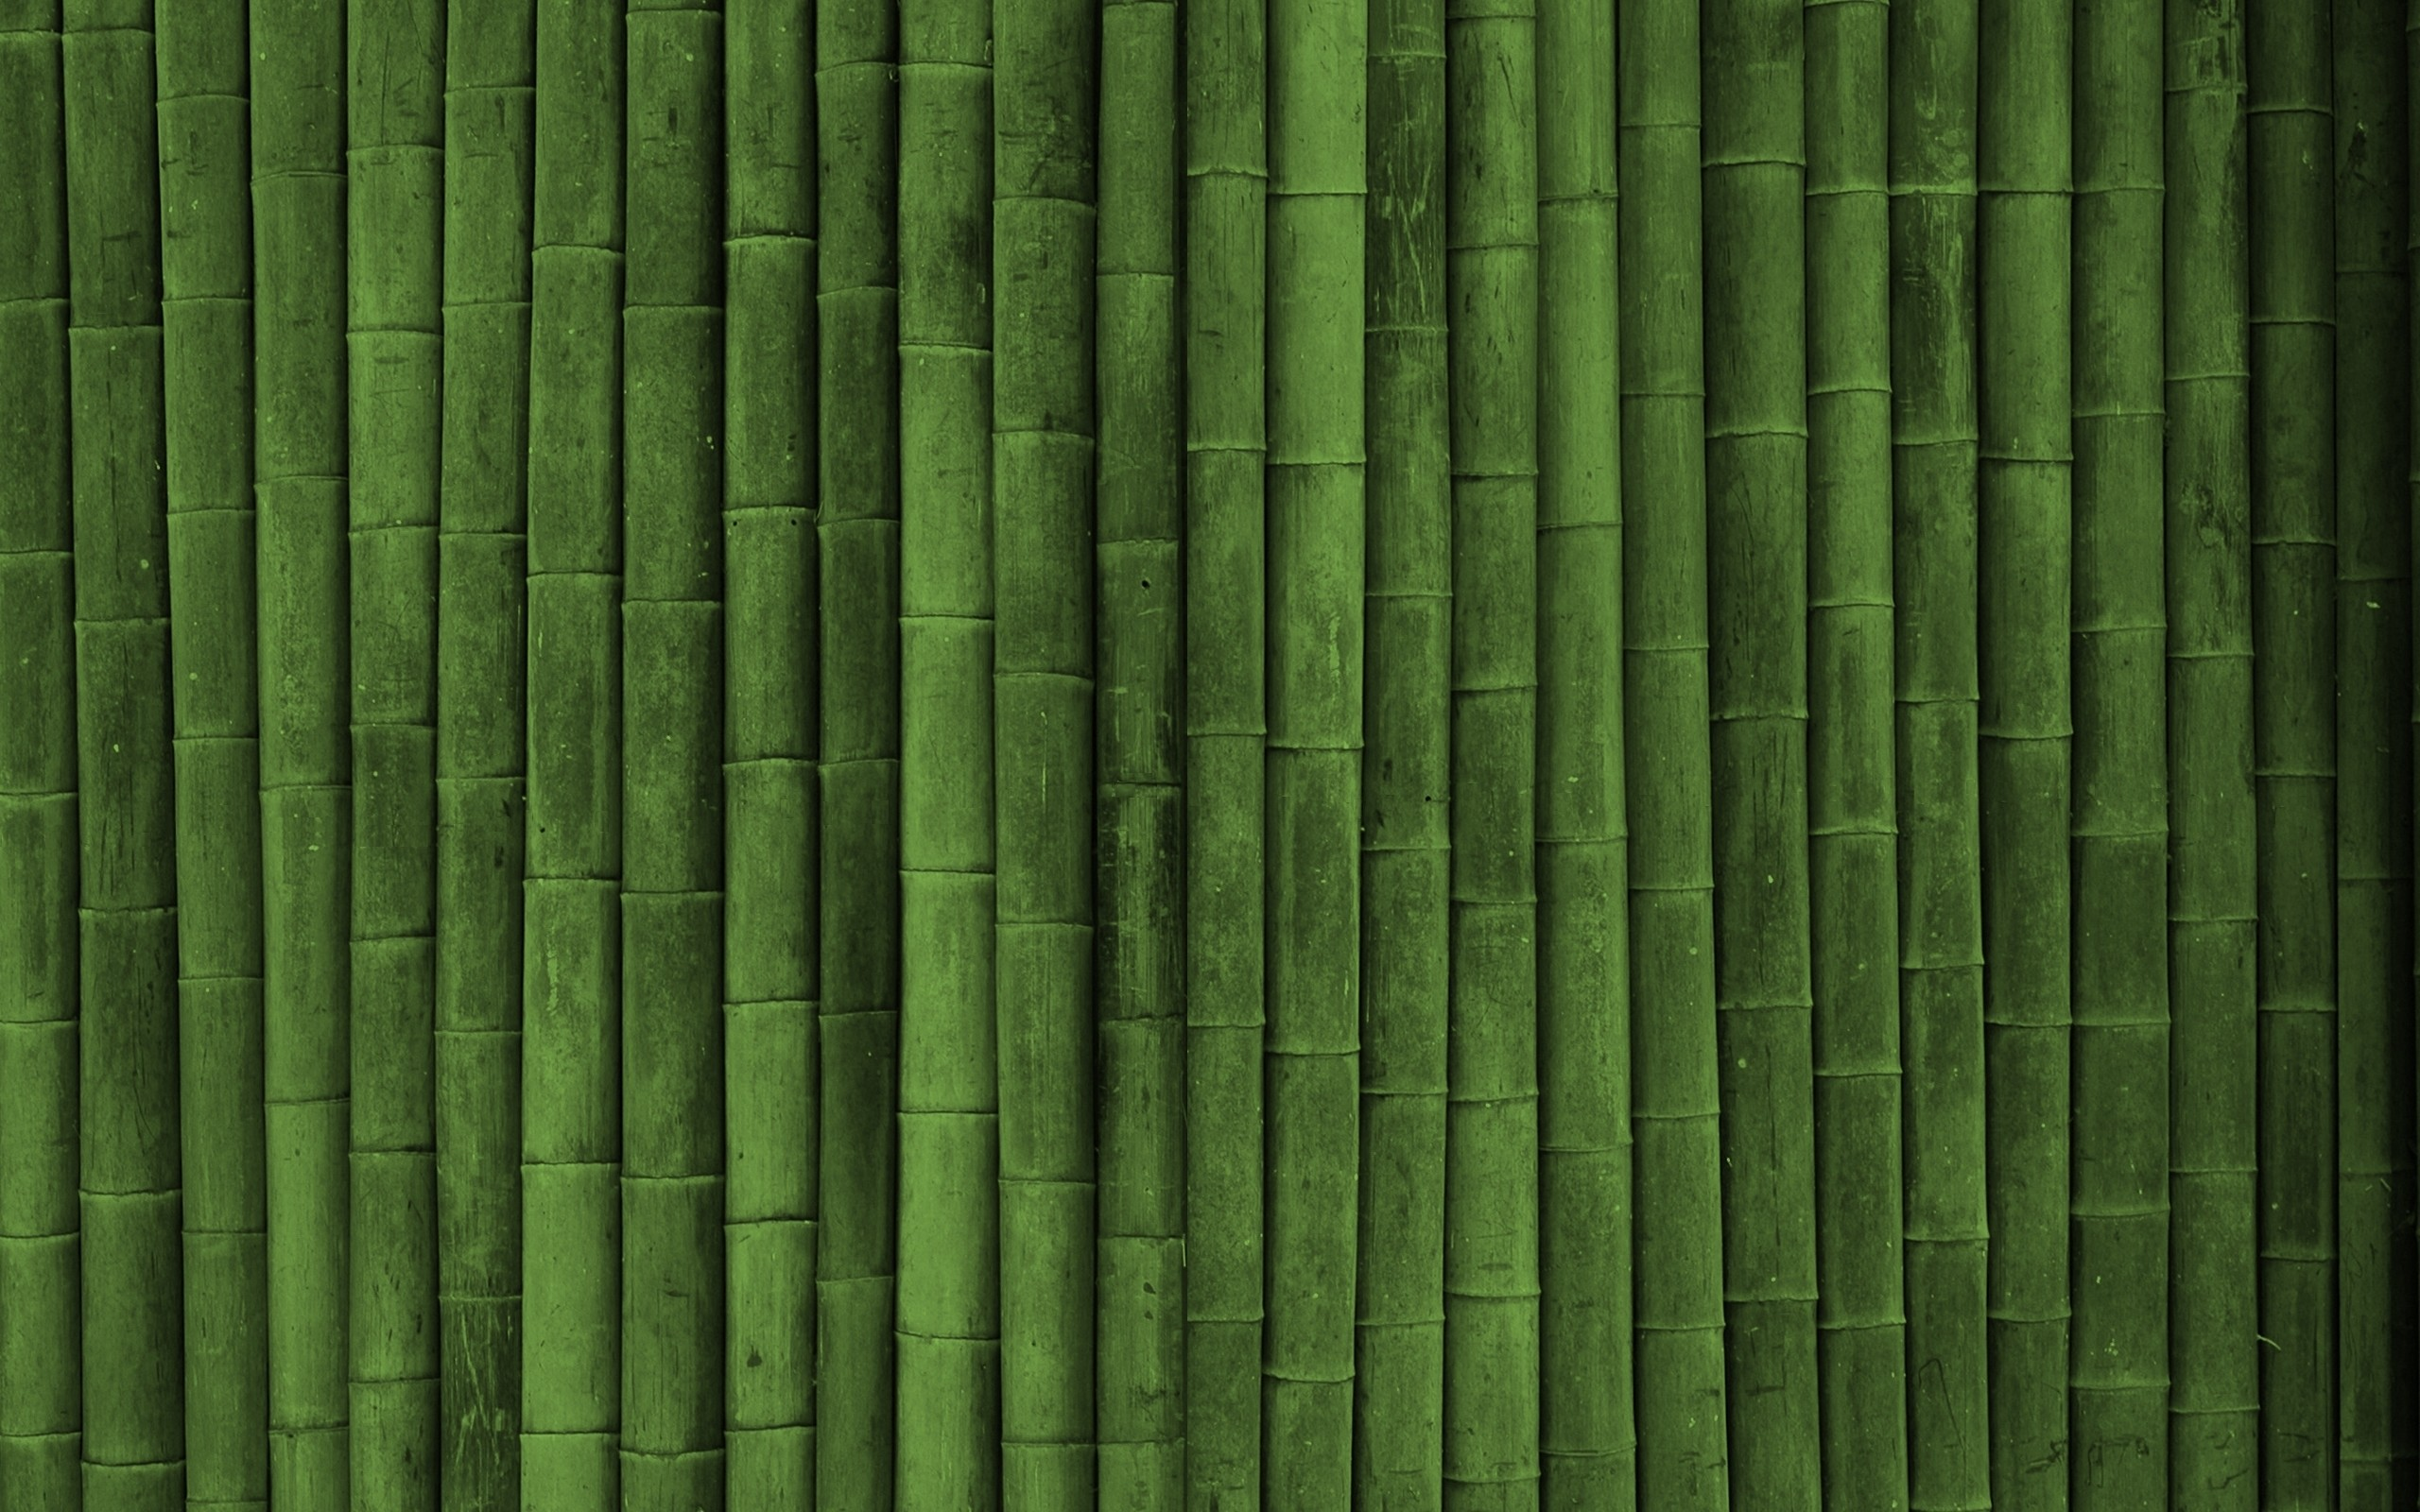 I choose this because it's a texture of bamboo, very hard and not soft.